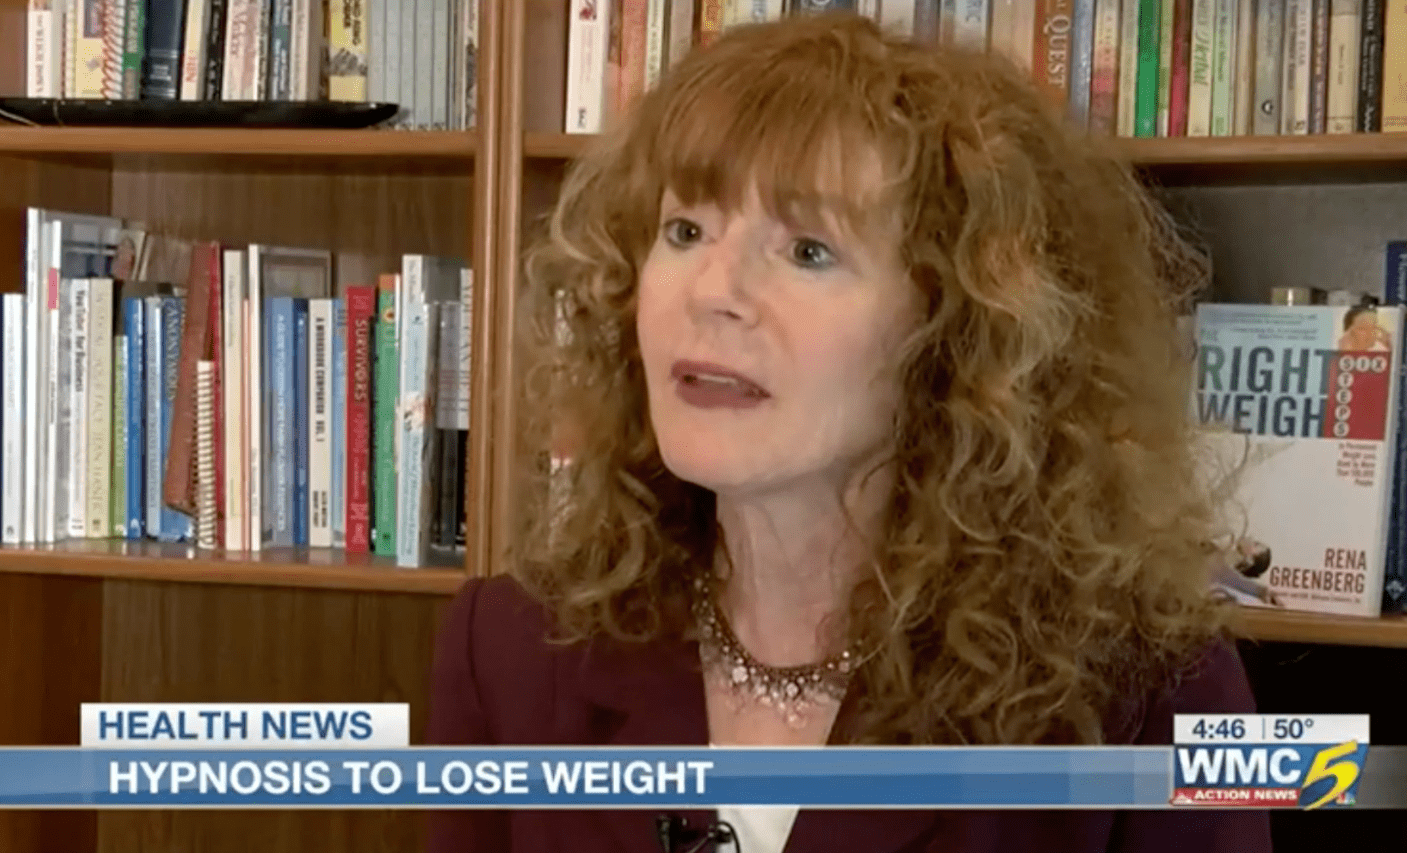 Rena on TV for weight loss hypnosis success